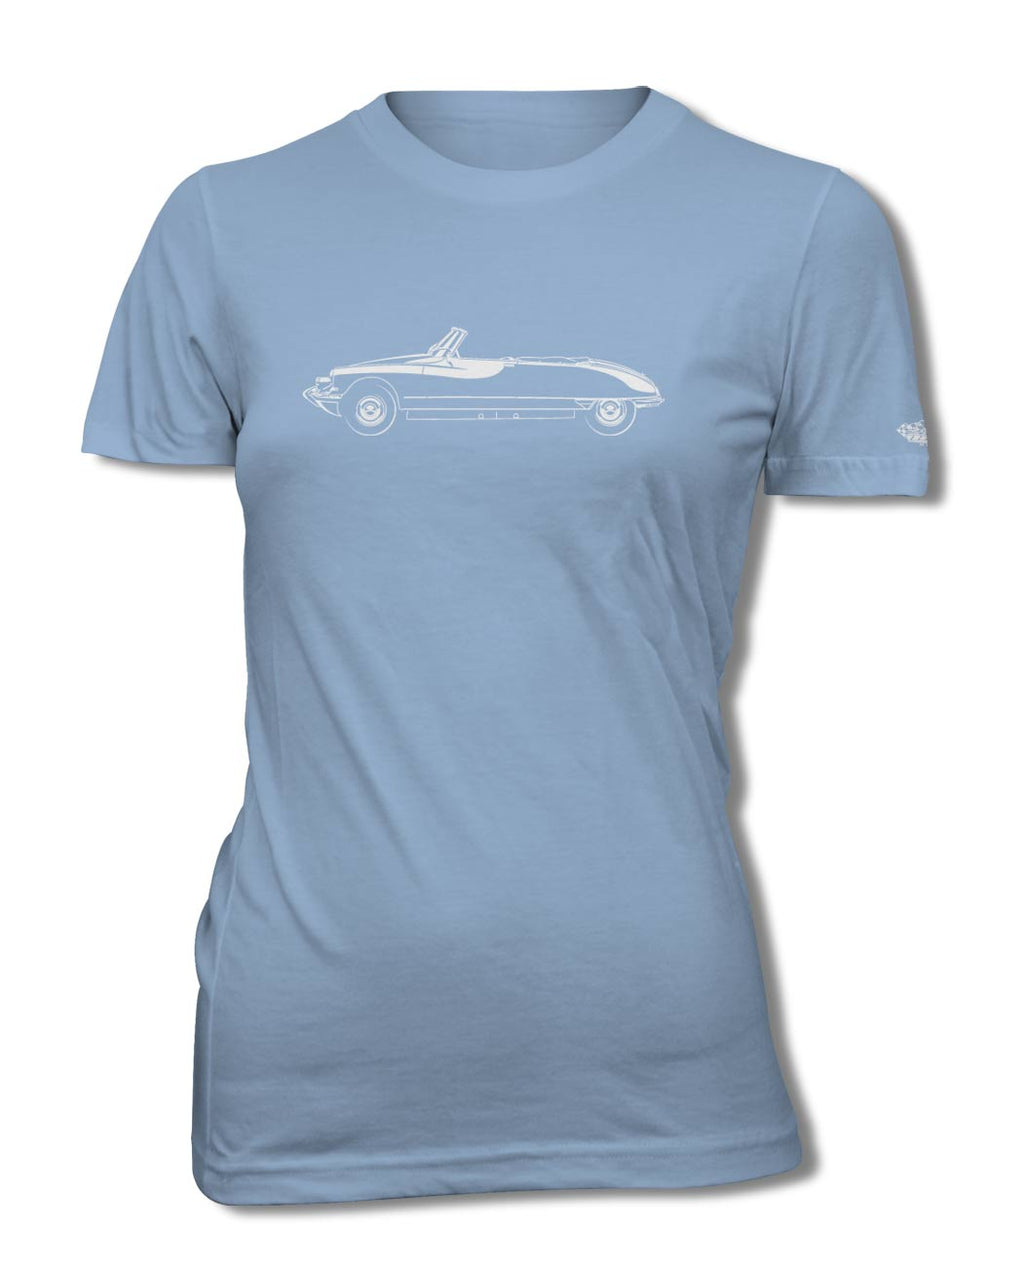 Citroen DS ID 1955 - 1967 Convertible Cabriolet T-Shirt - Women - Side View